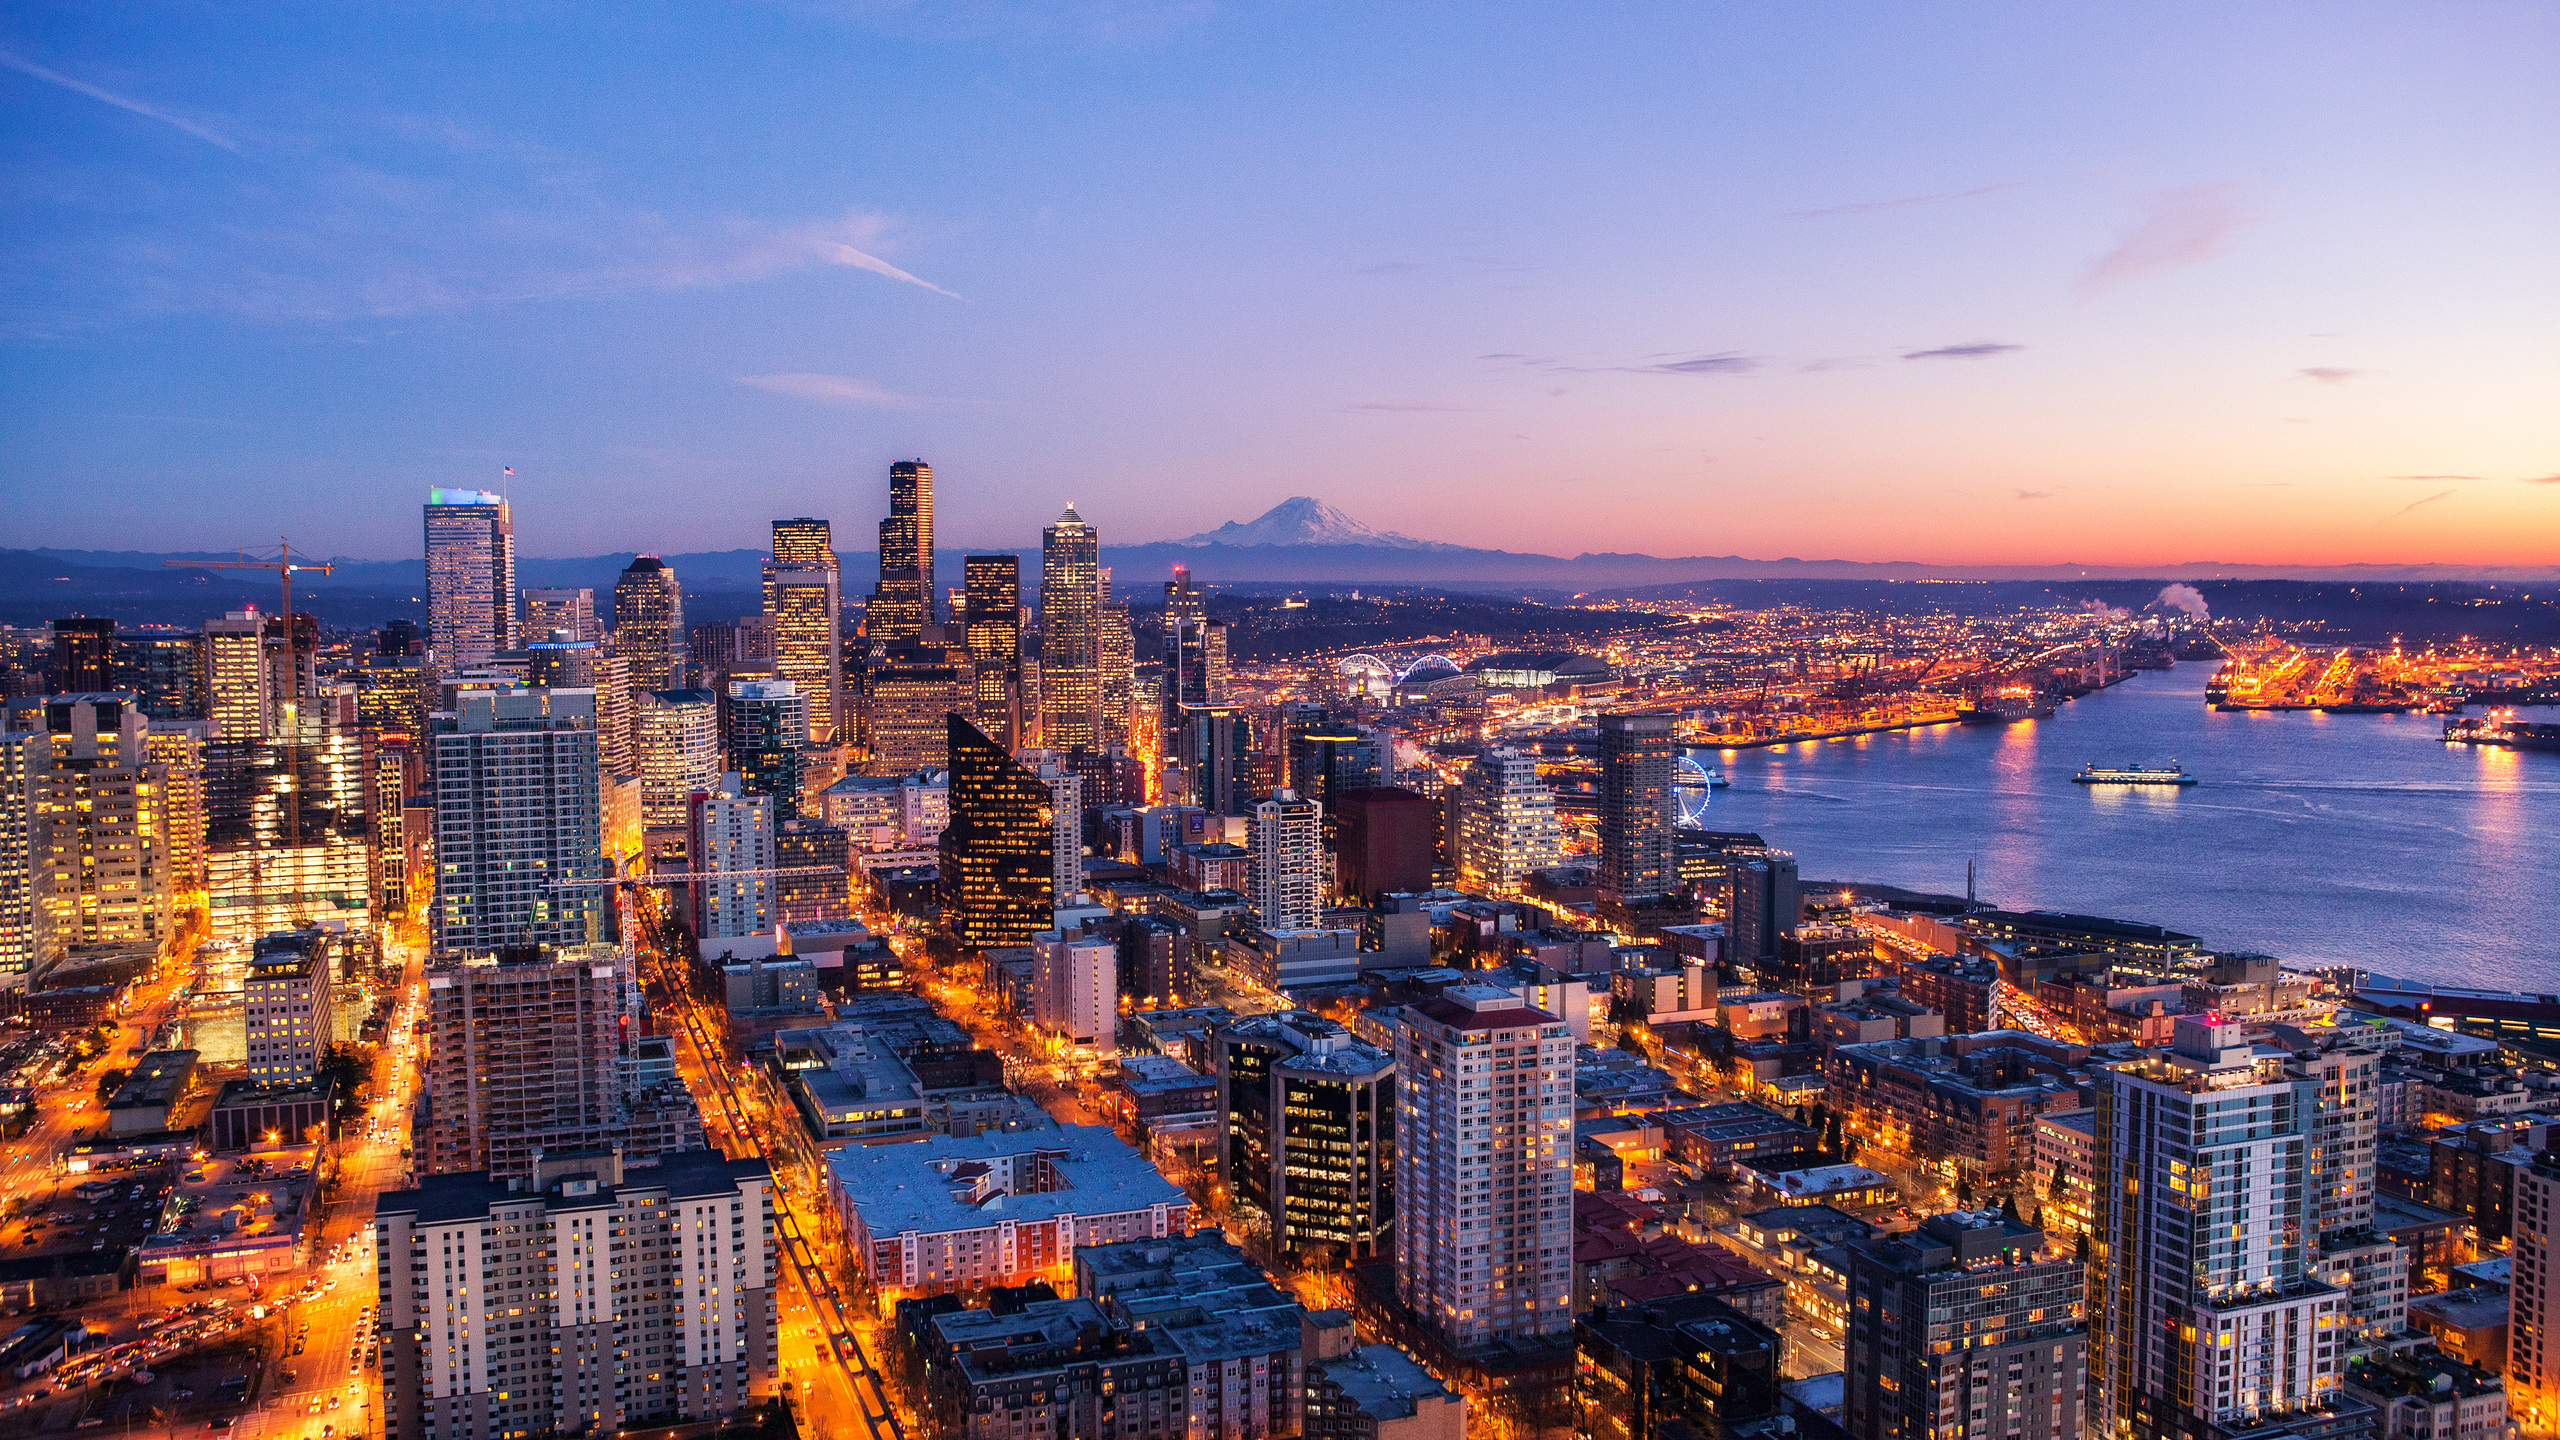 2560x1440 Seattle Skyline At Night View 4k 1440p Resolution Hd 4k Wallpapers Images Backgrounds Photos And Pictures